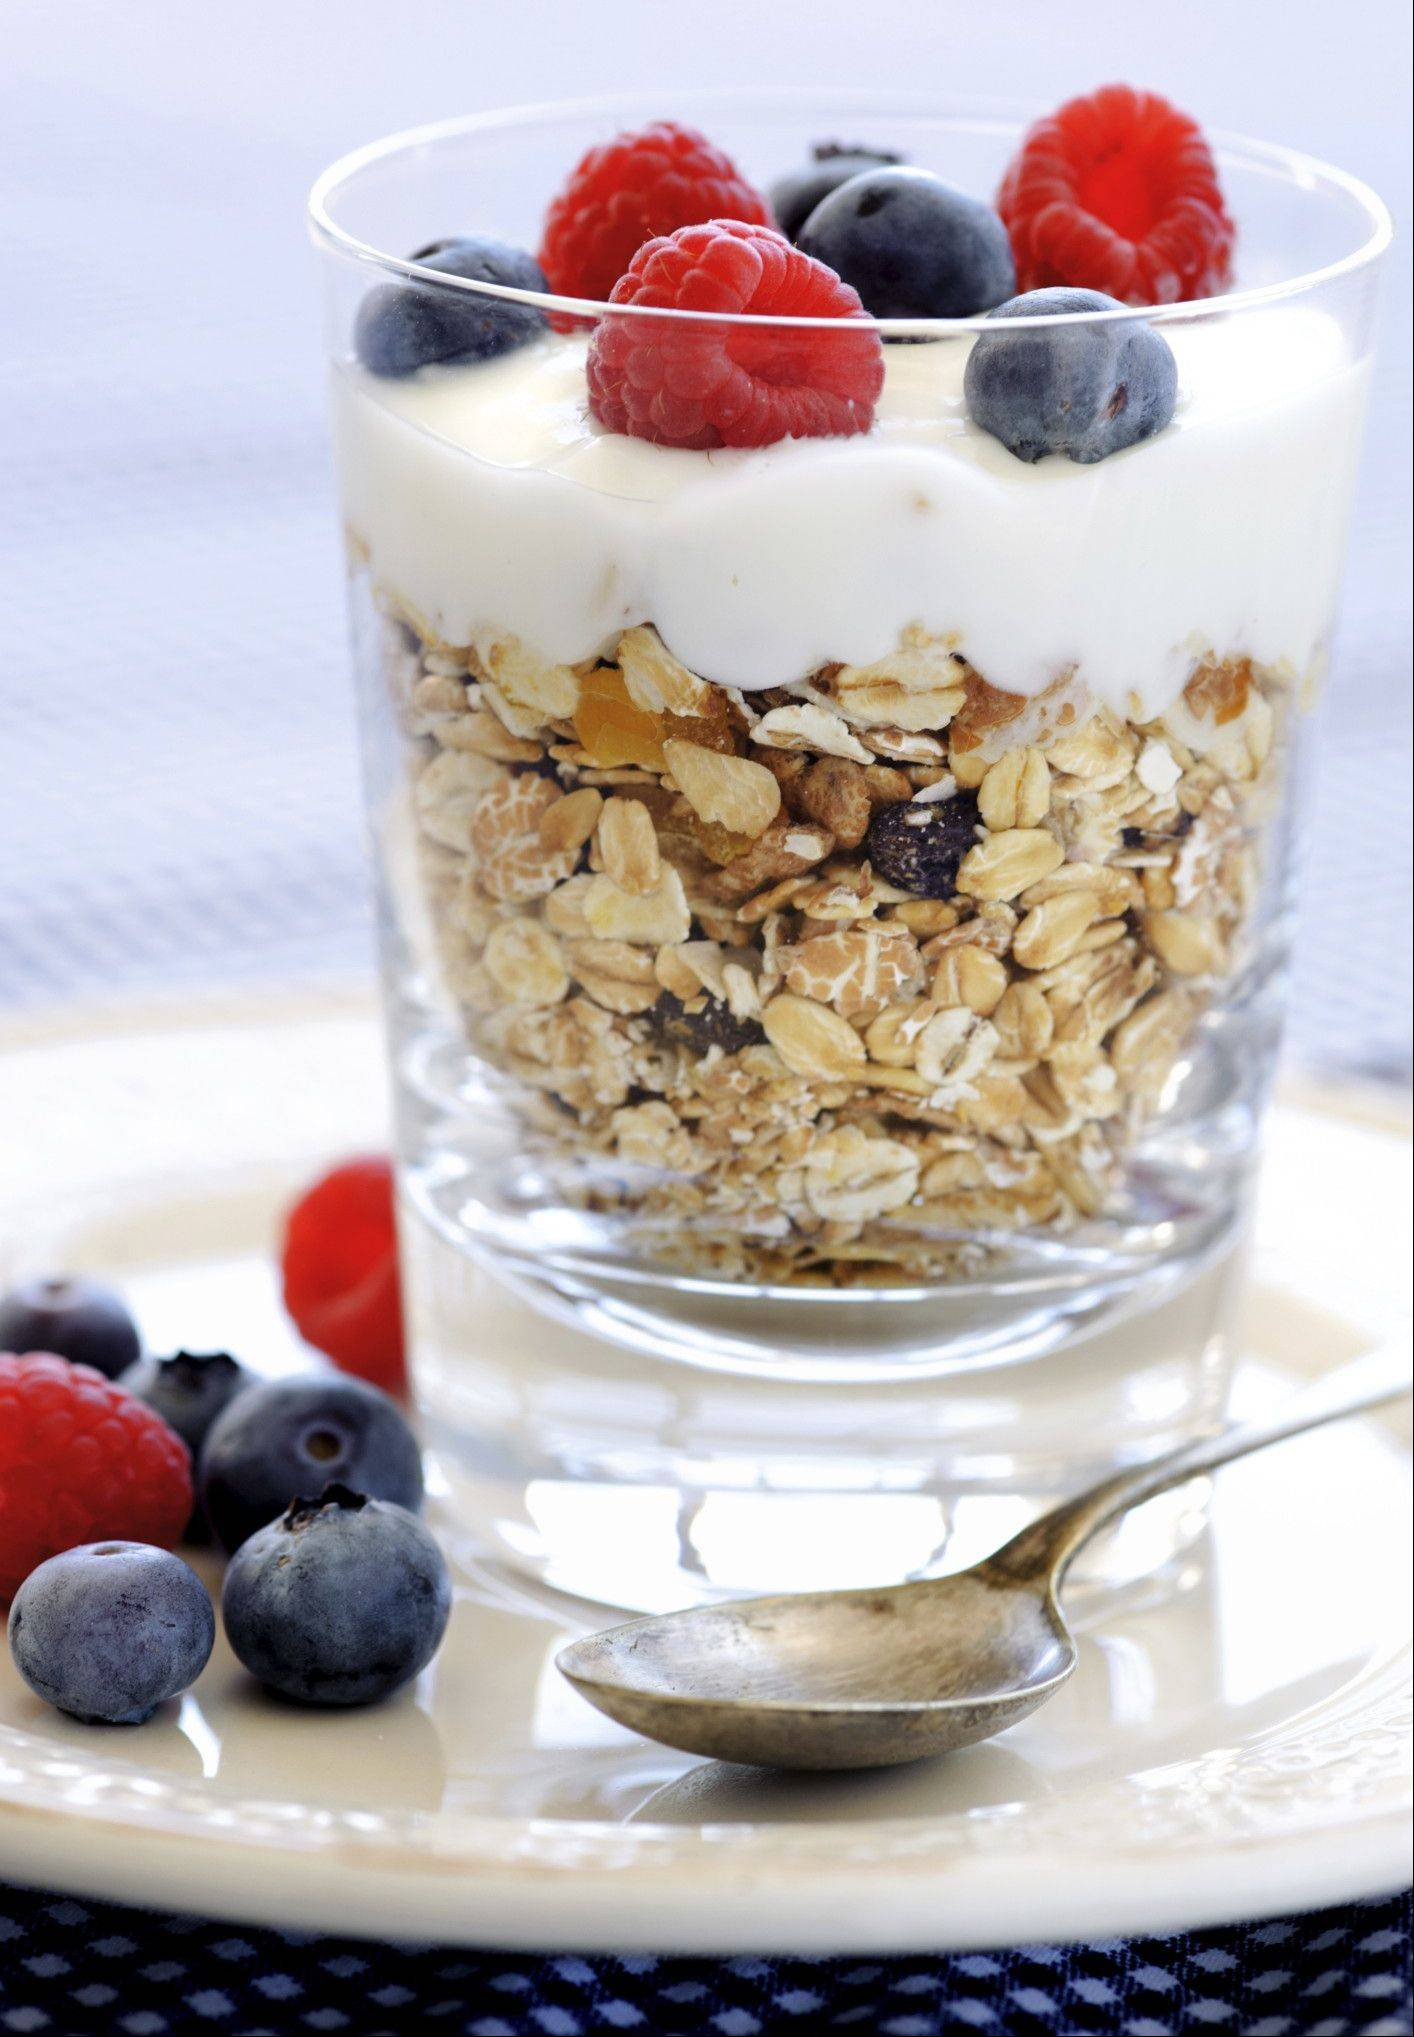 A yogurt parfait with oats or walnuts is a good meal to eat to start your day.